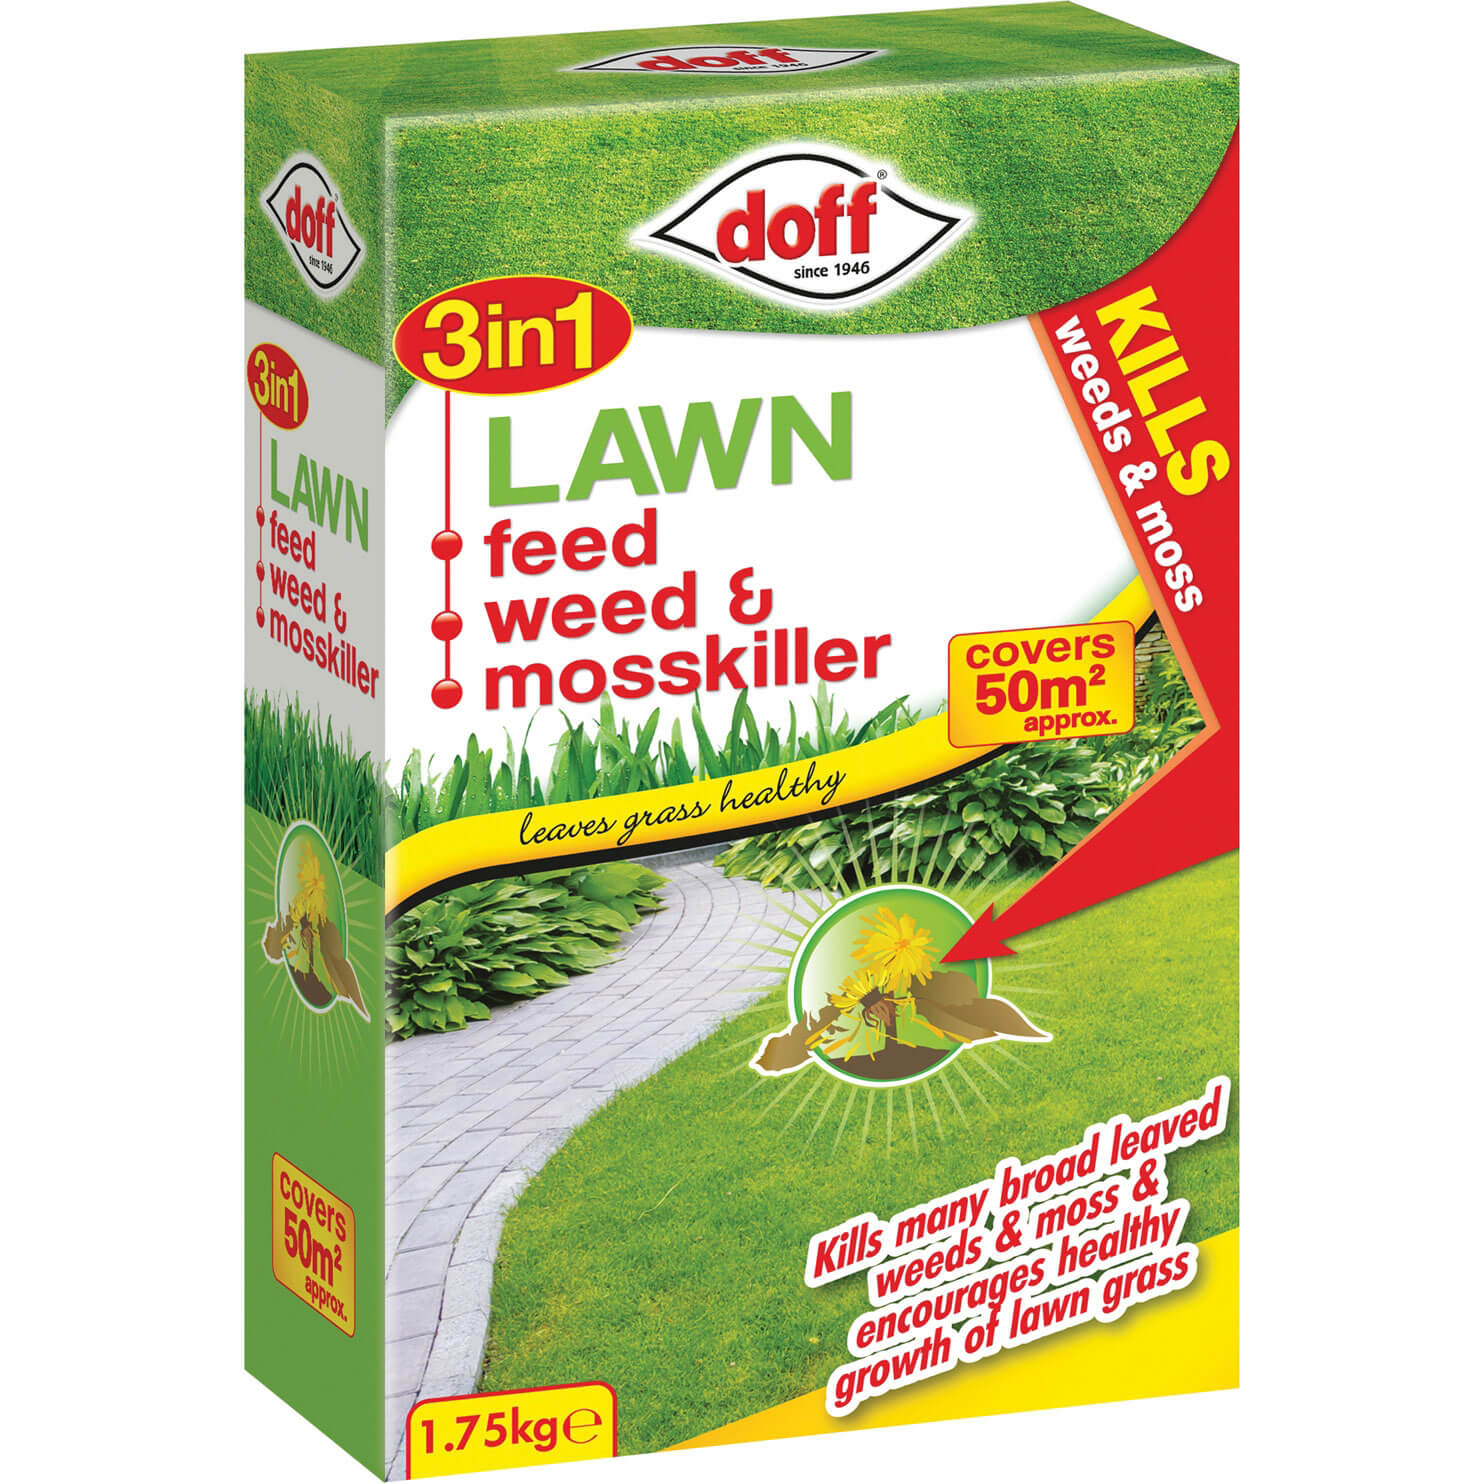 Image of Doff 3 in 1 Lawn Feed Weed & Moss Killer 1750g